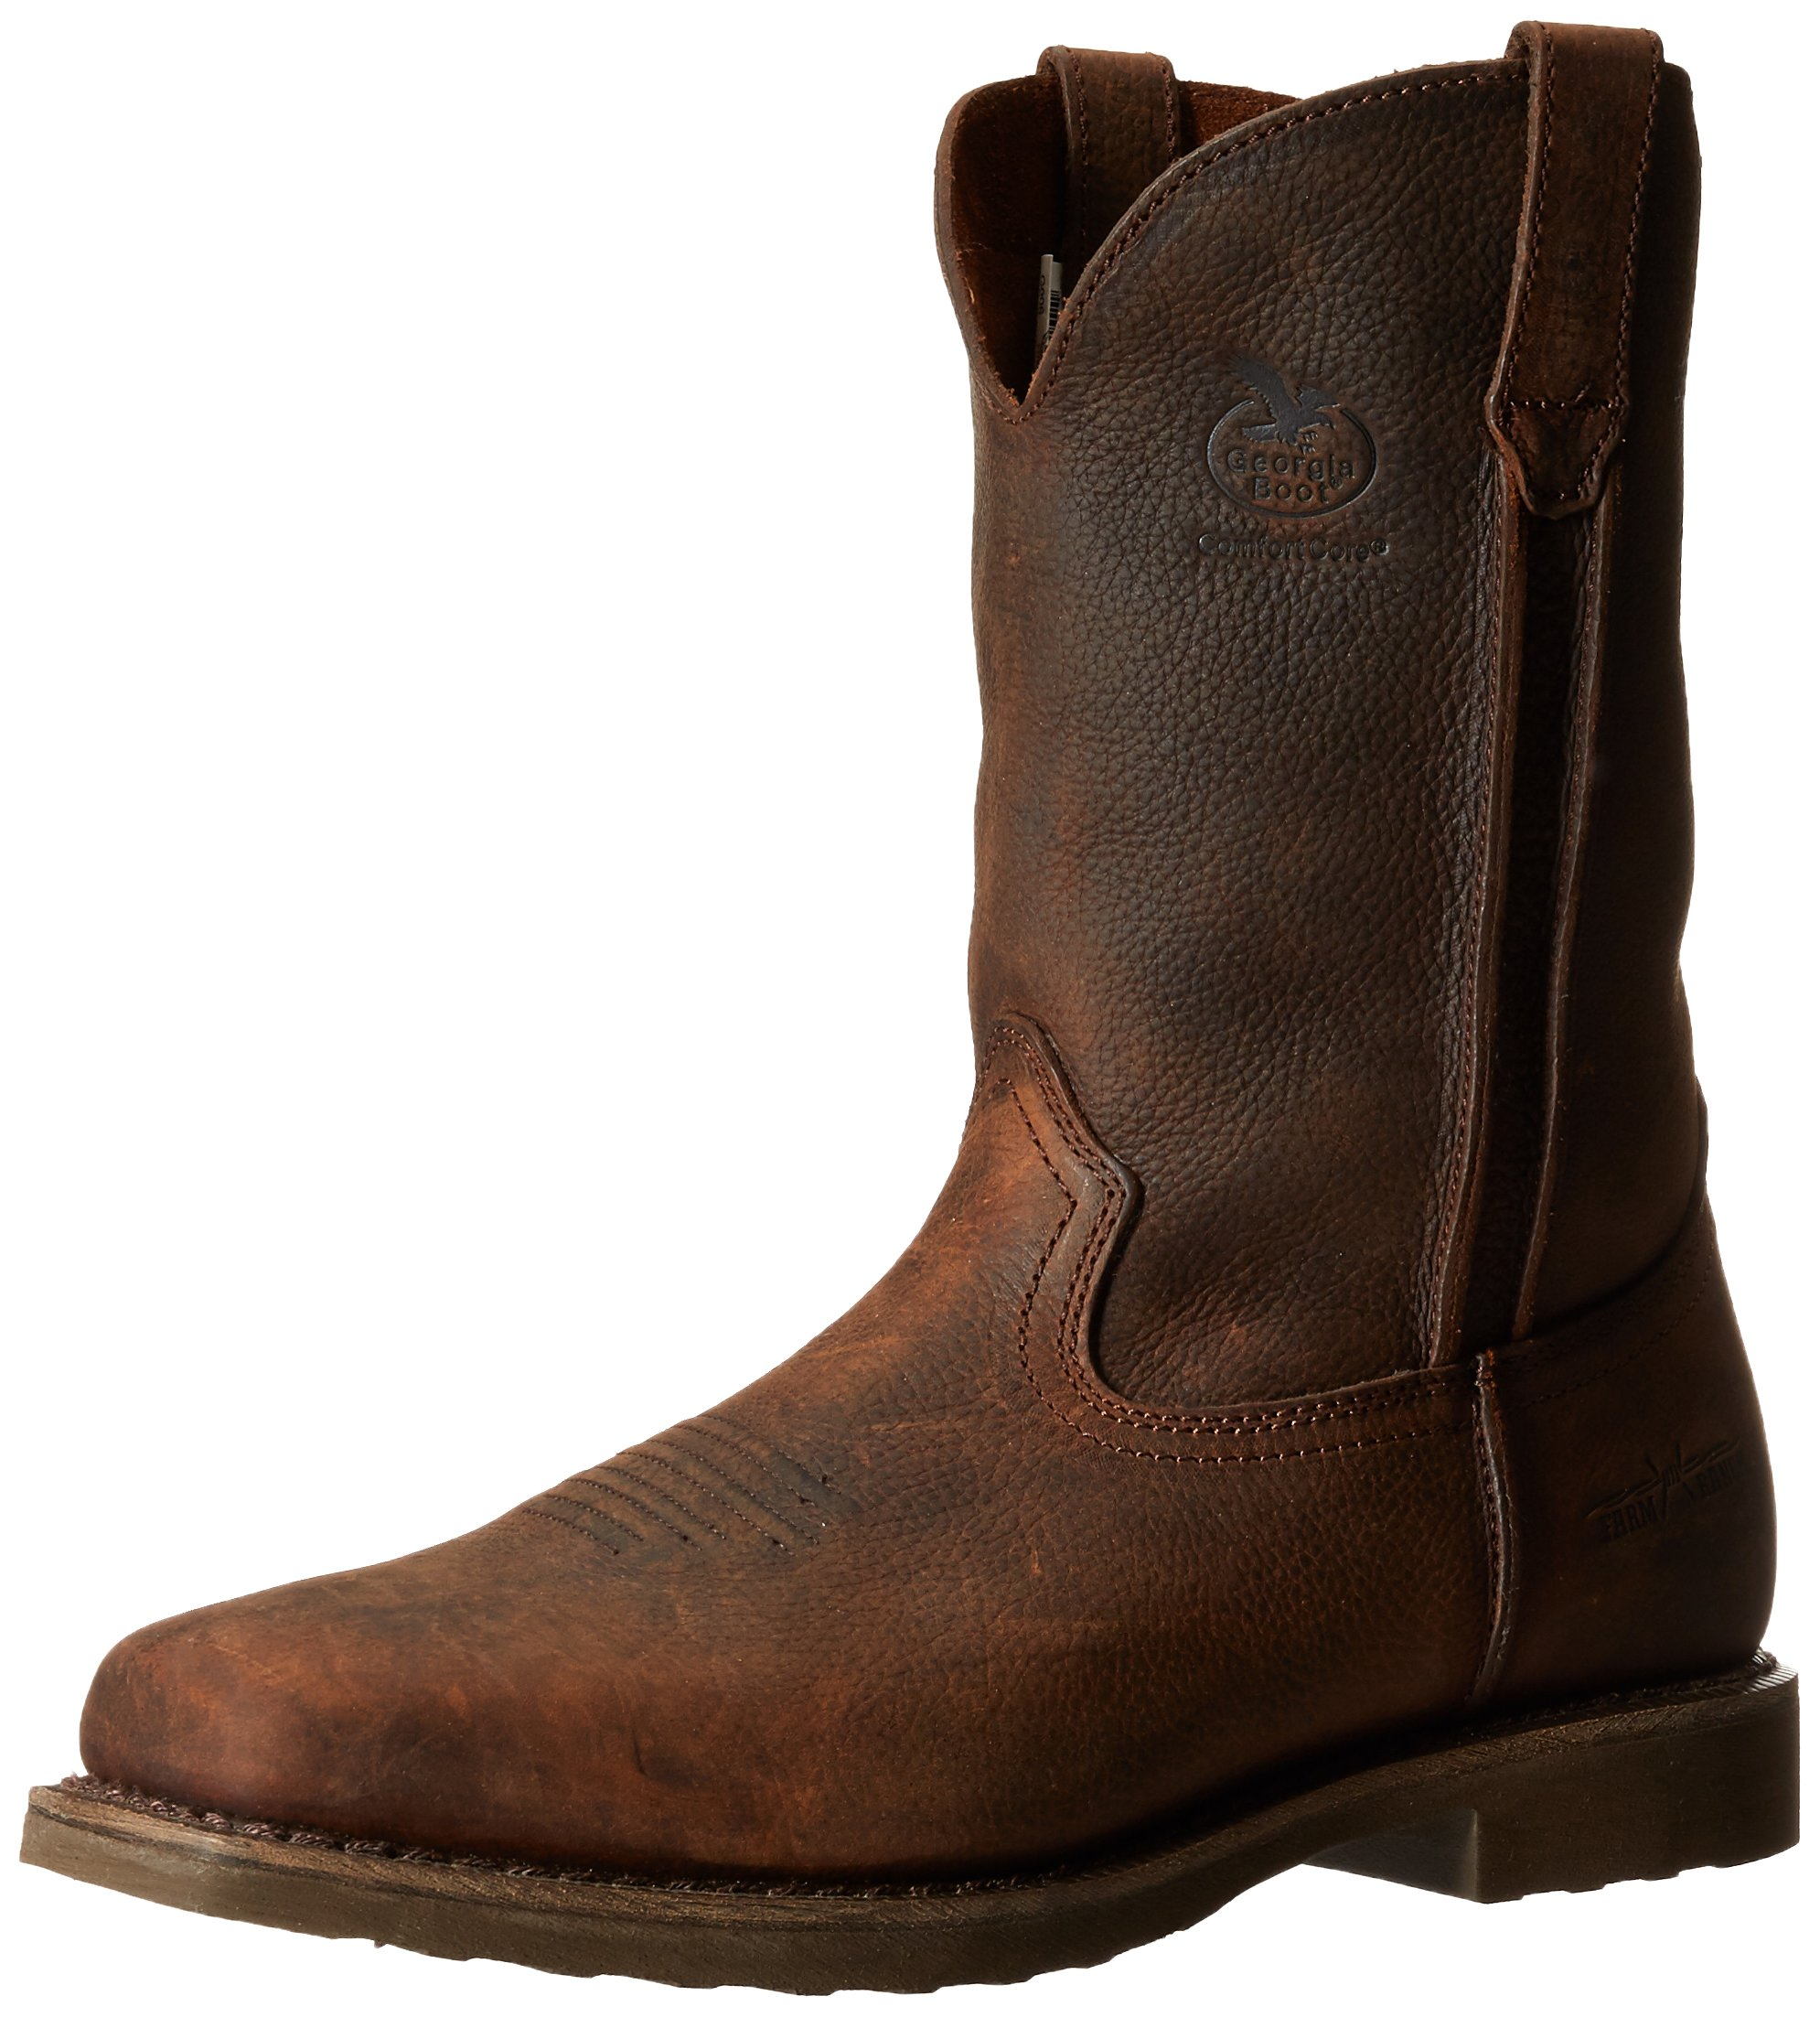 Georgia Boot Men's Carbo Tec G006 Western Boot,Dog Wood,10.5 M US by Georgia